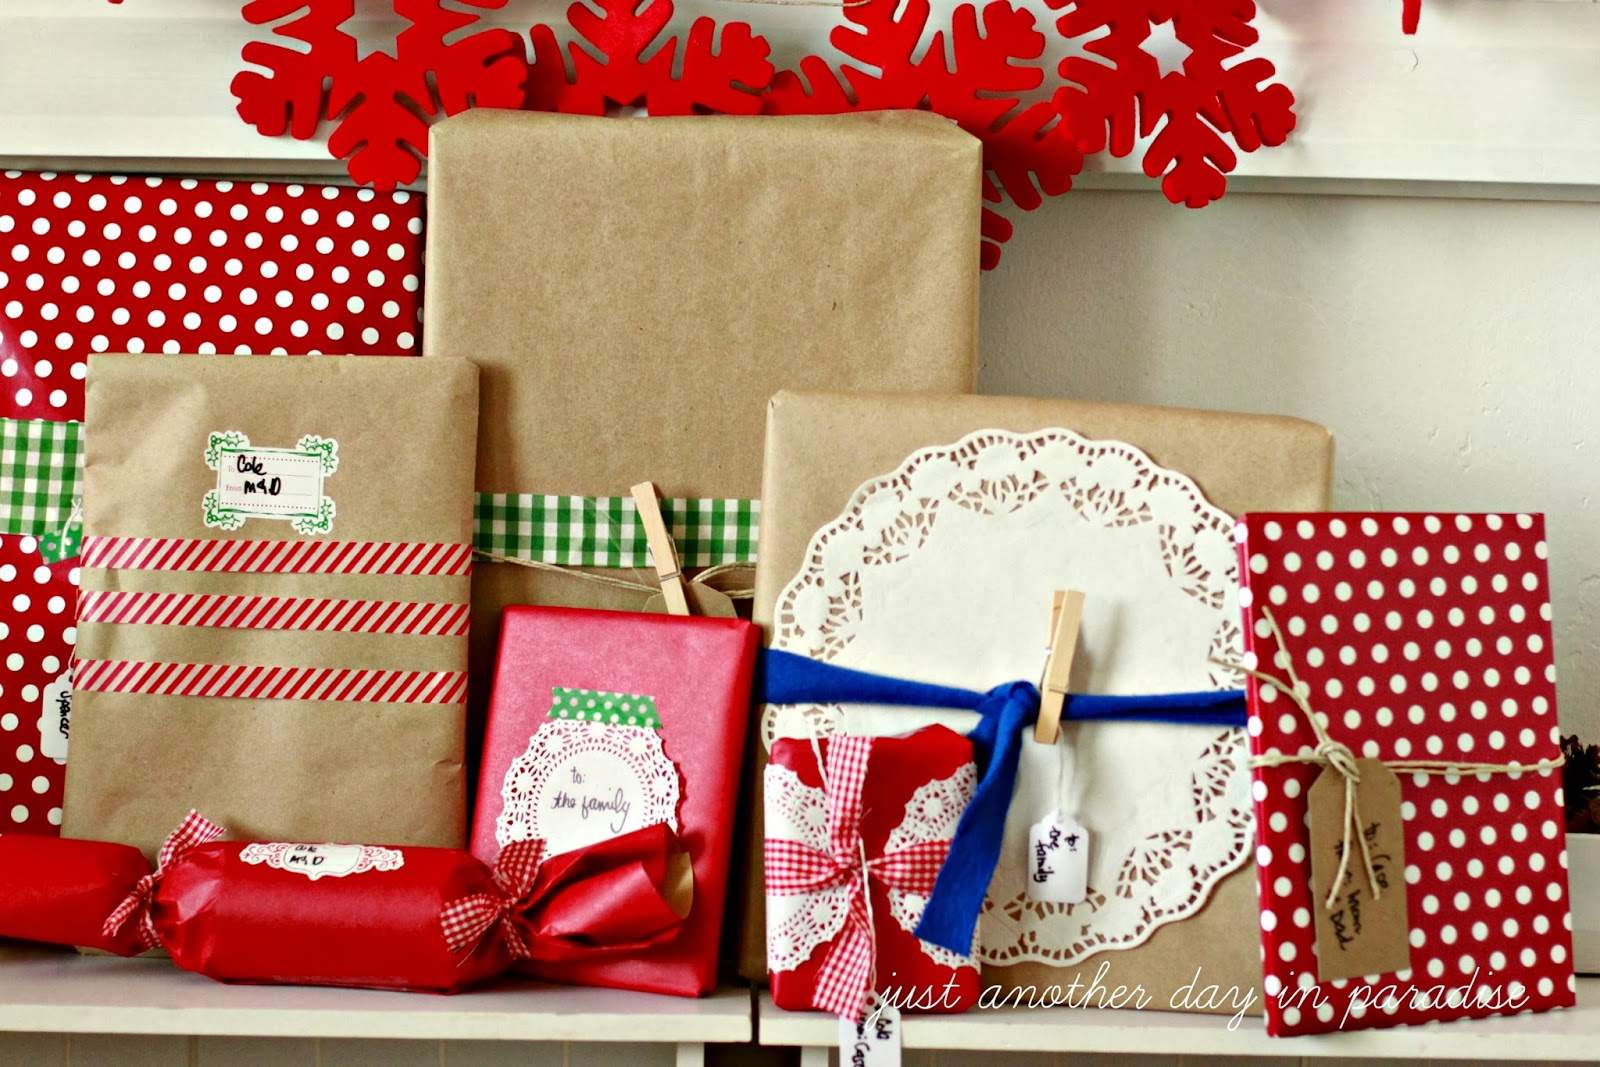 Just Another Day Paradise Country Christmas Gift Wrapping